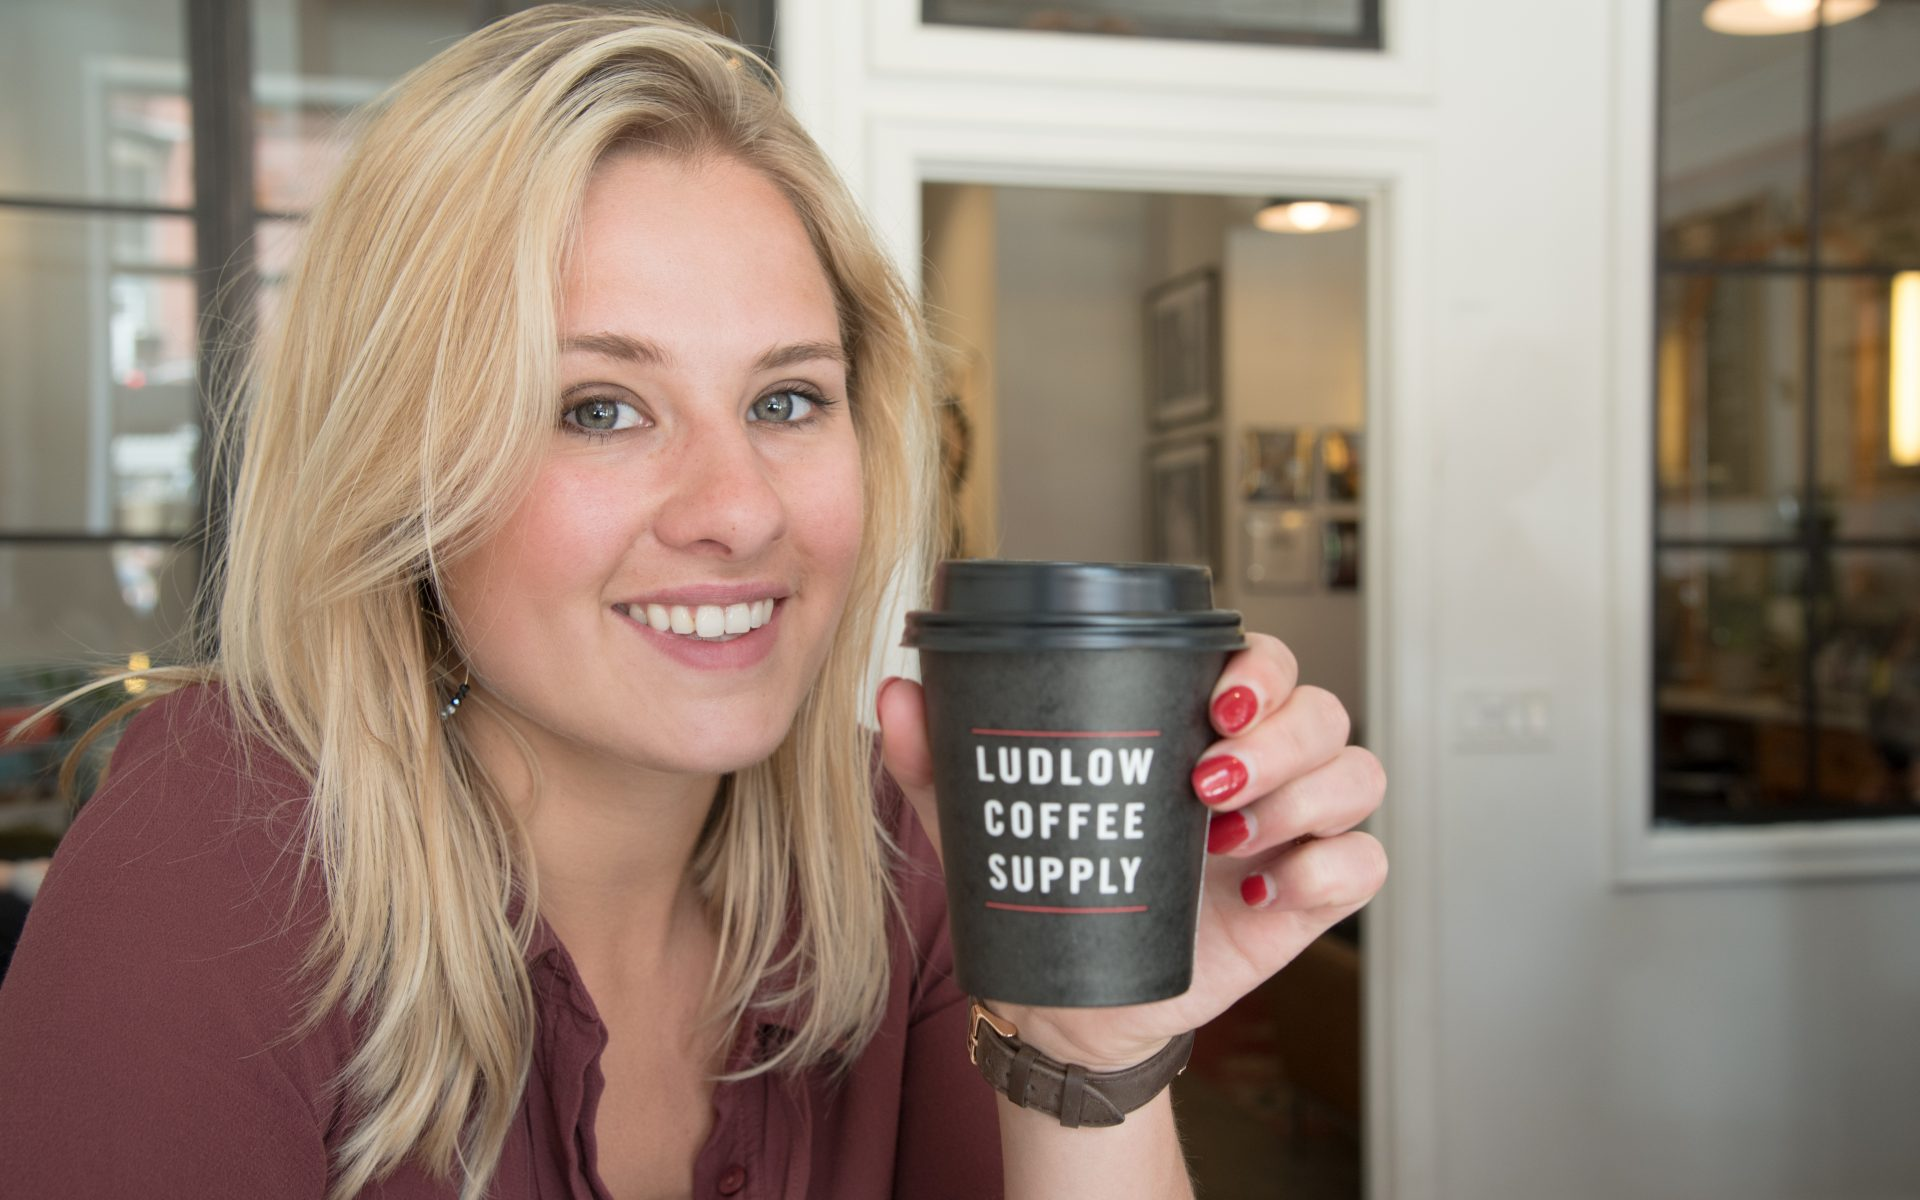 Ludlow Coffee Supply New York